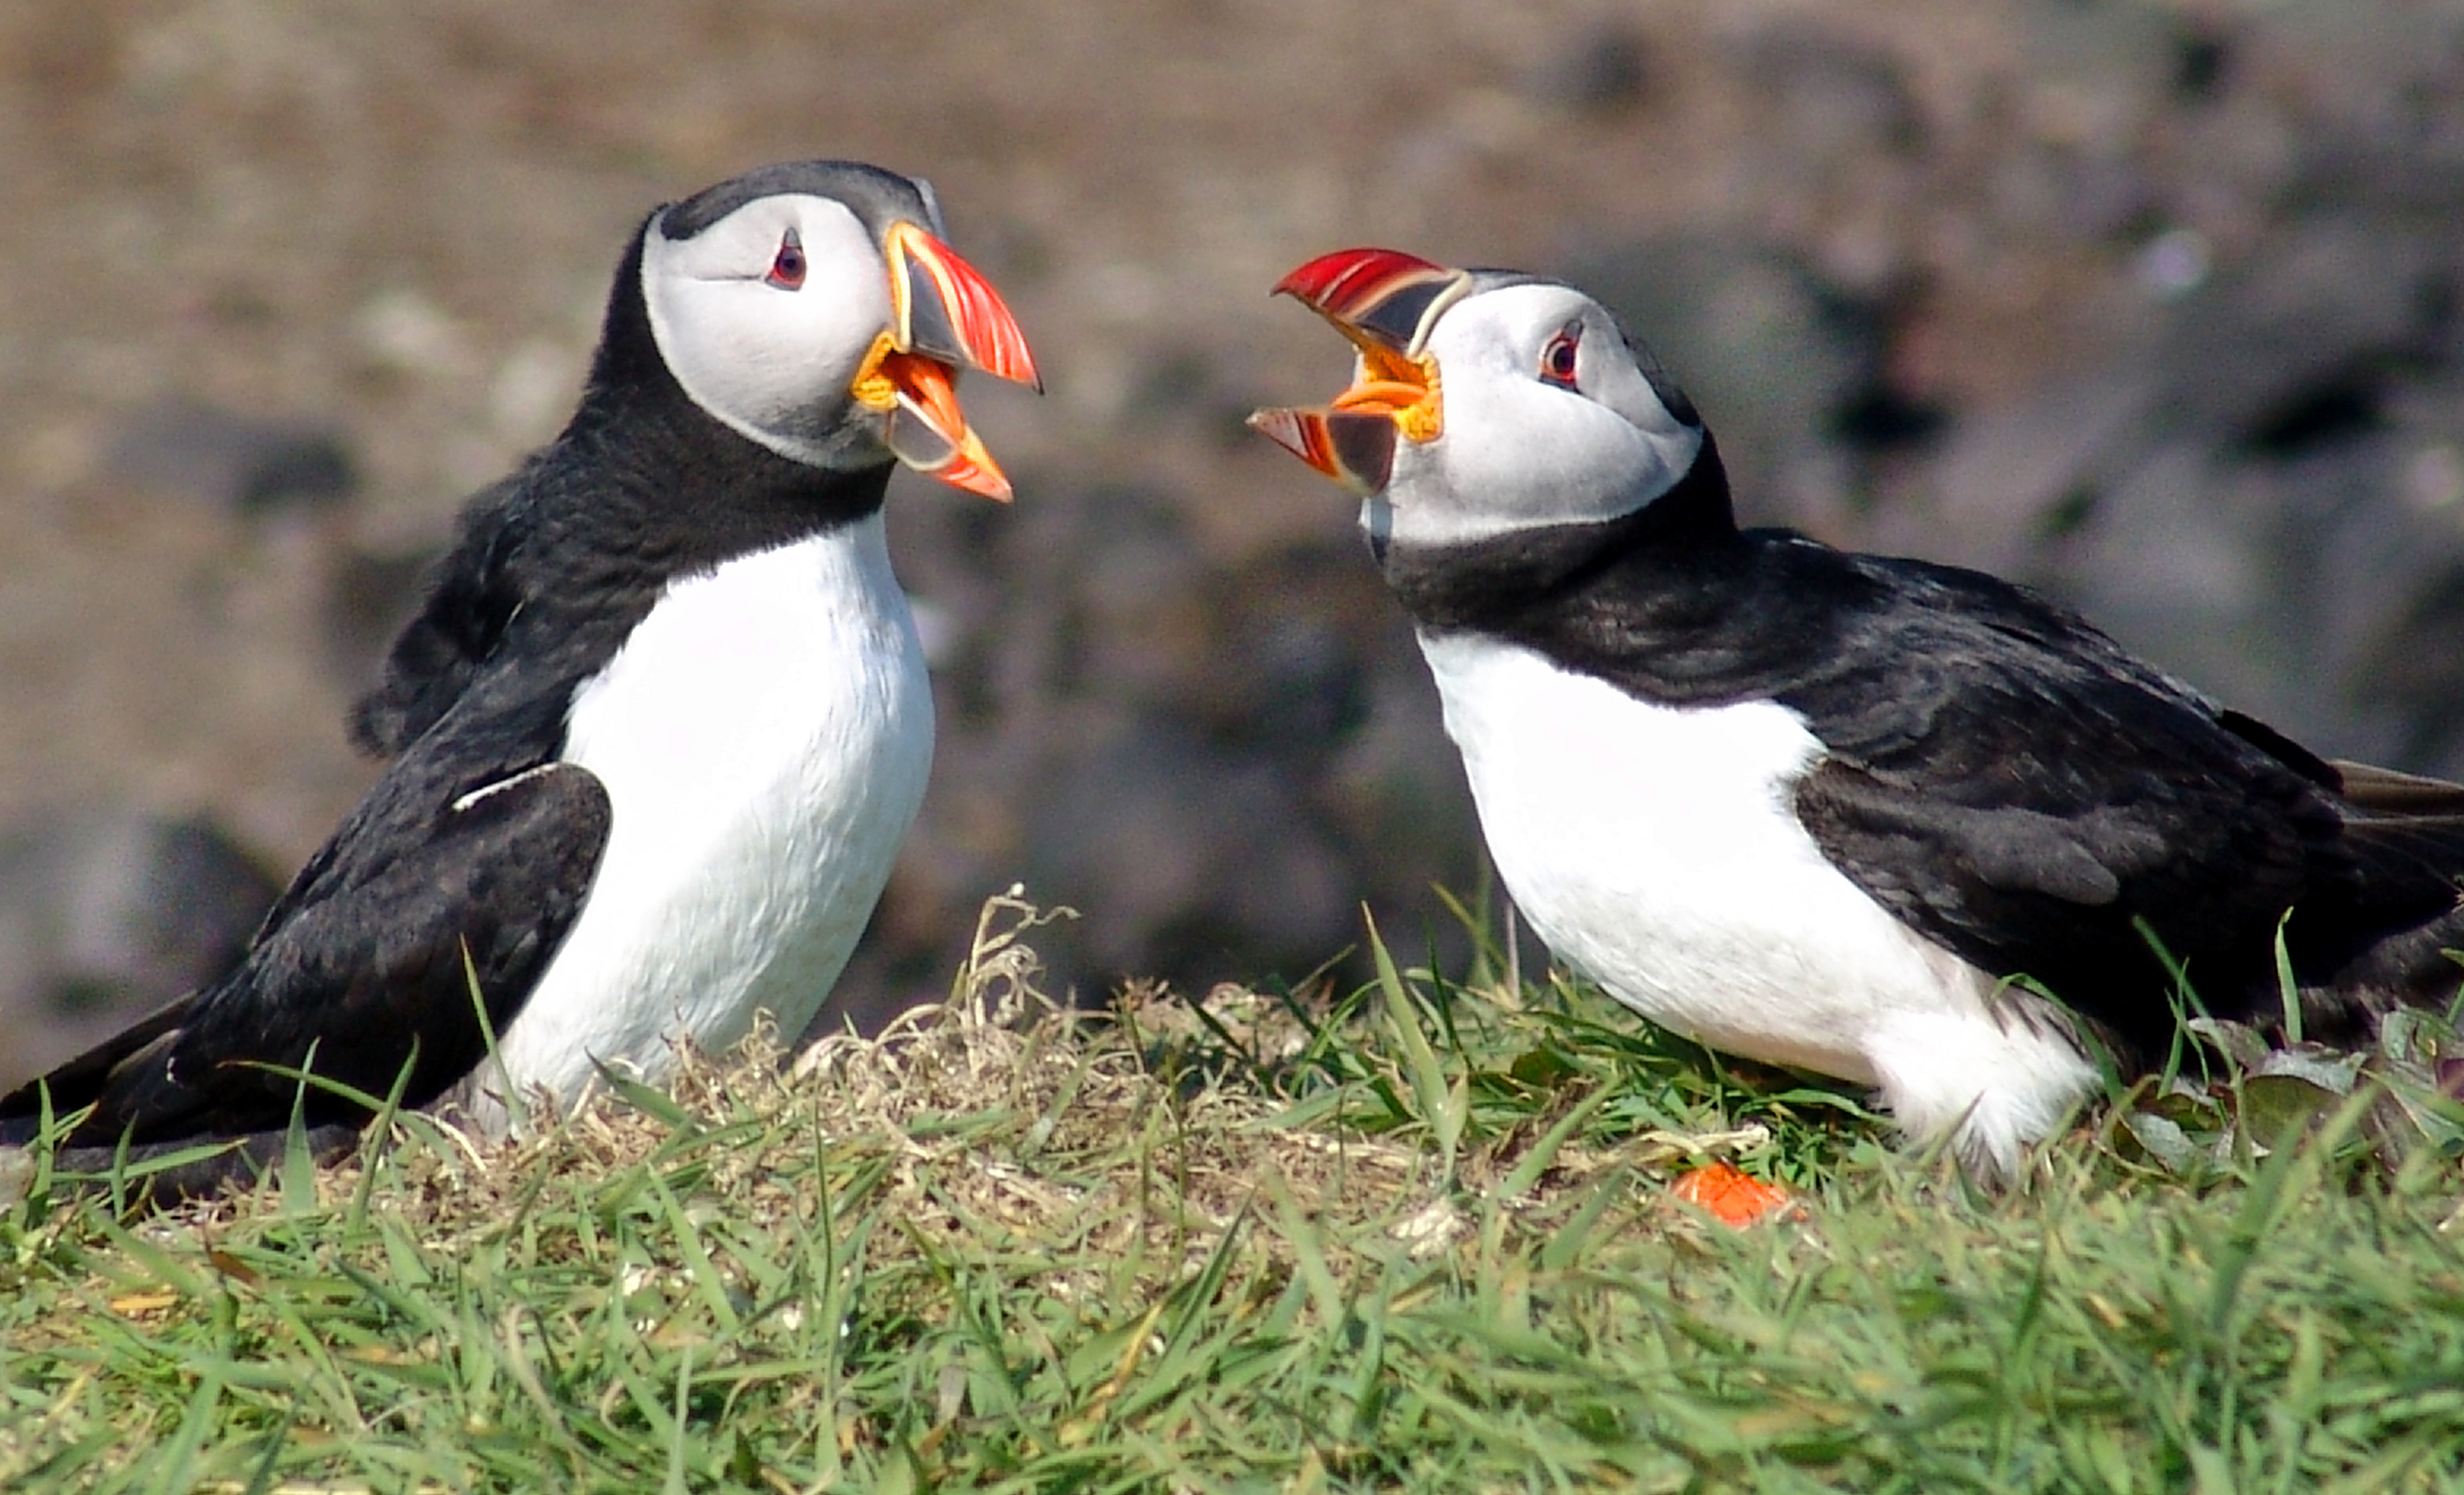 HQ Puffin Wallpapers | File 2893.86Kb